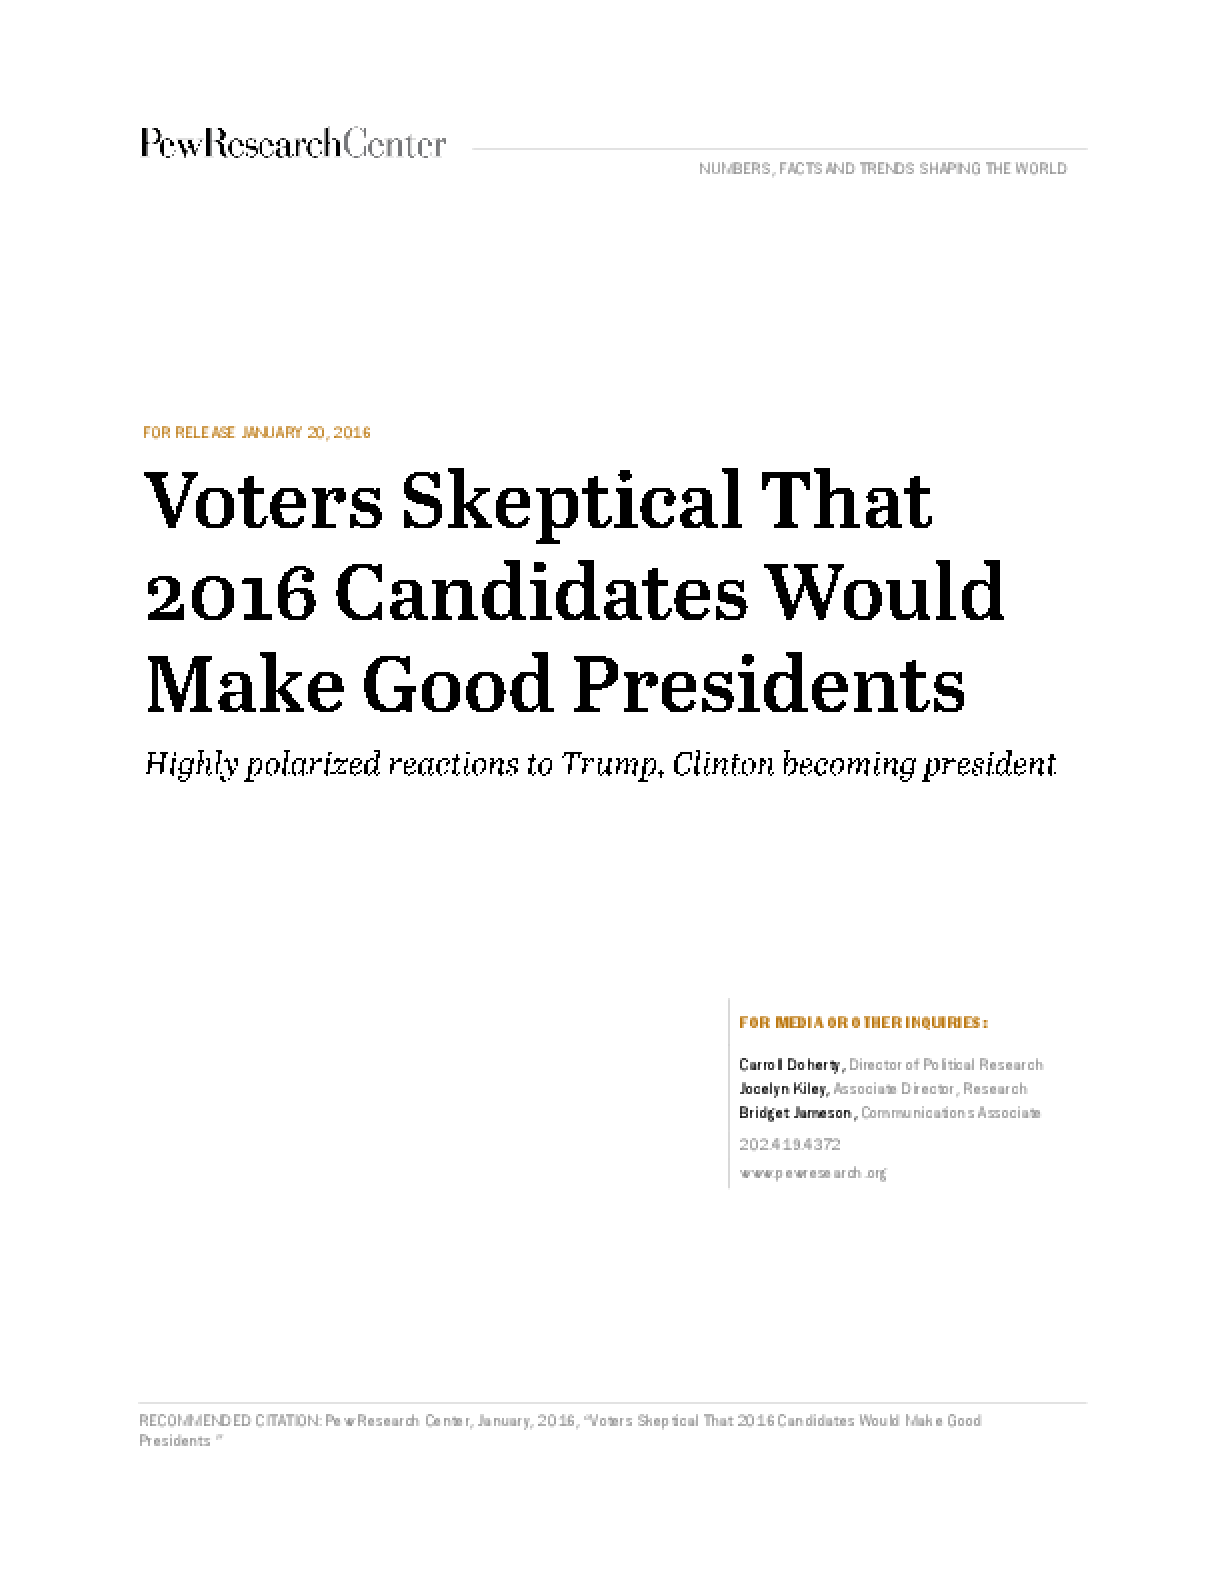 Voters Skeptical that 2016 Candidates Would Make Good Presidents: Highly Polarized Reactions to Trump, Clinton Becoming President